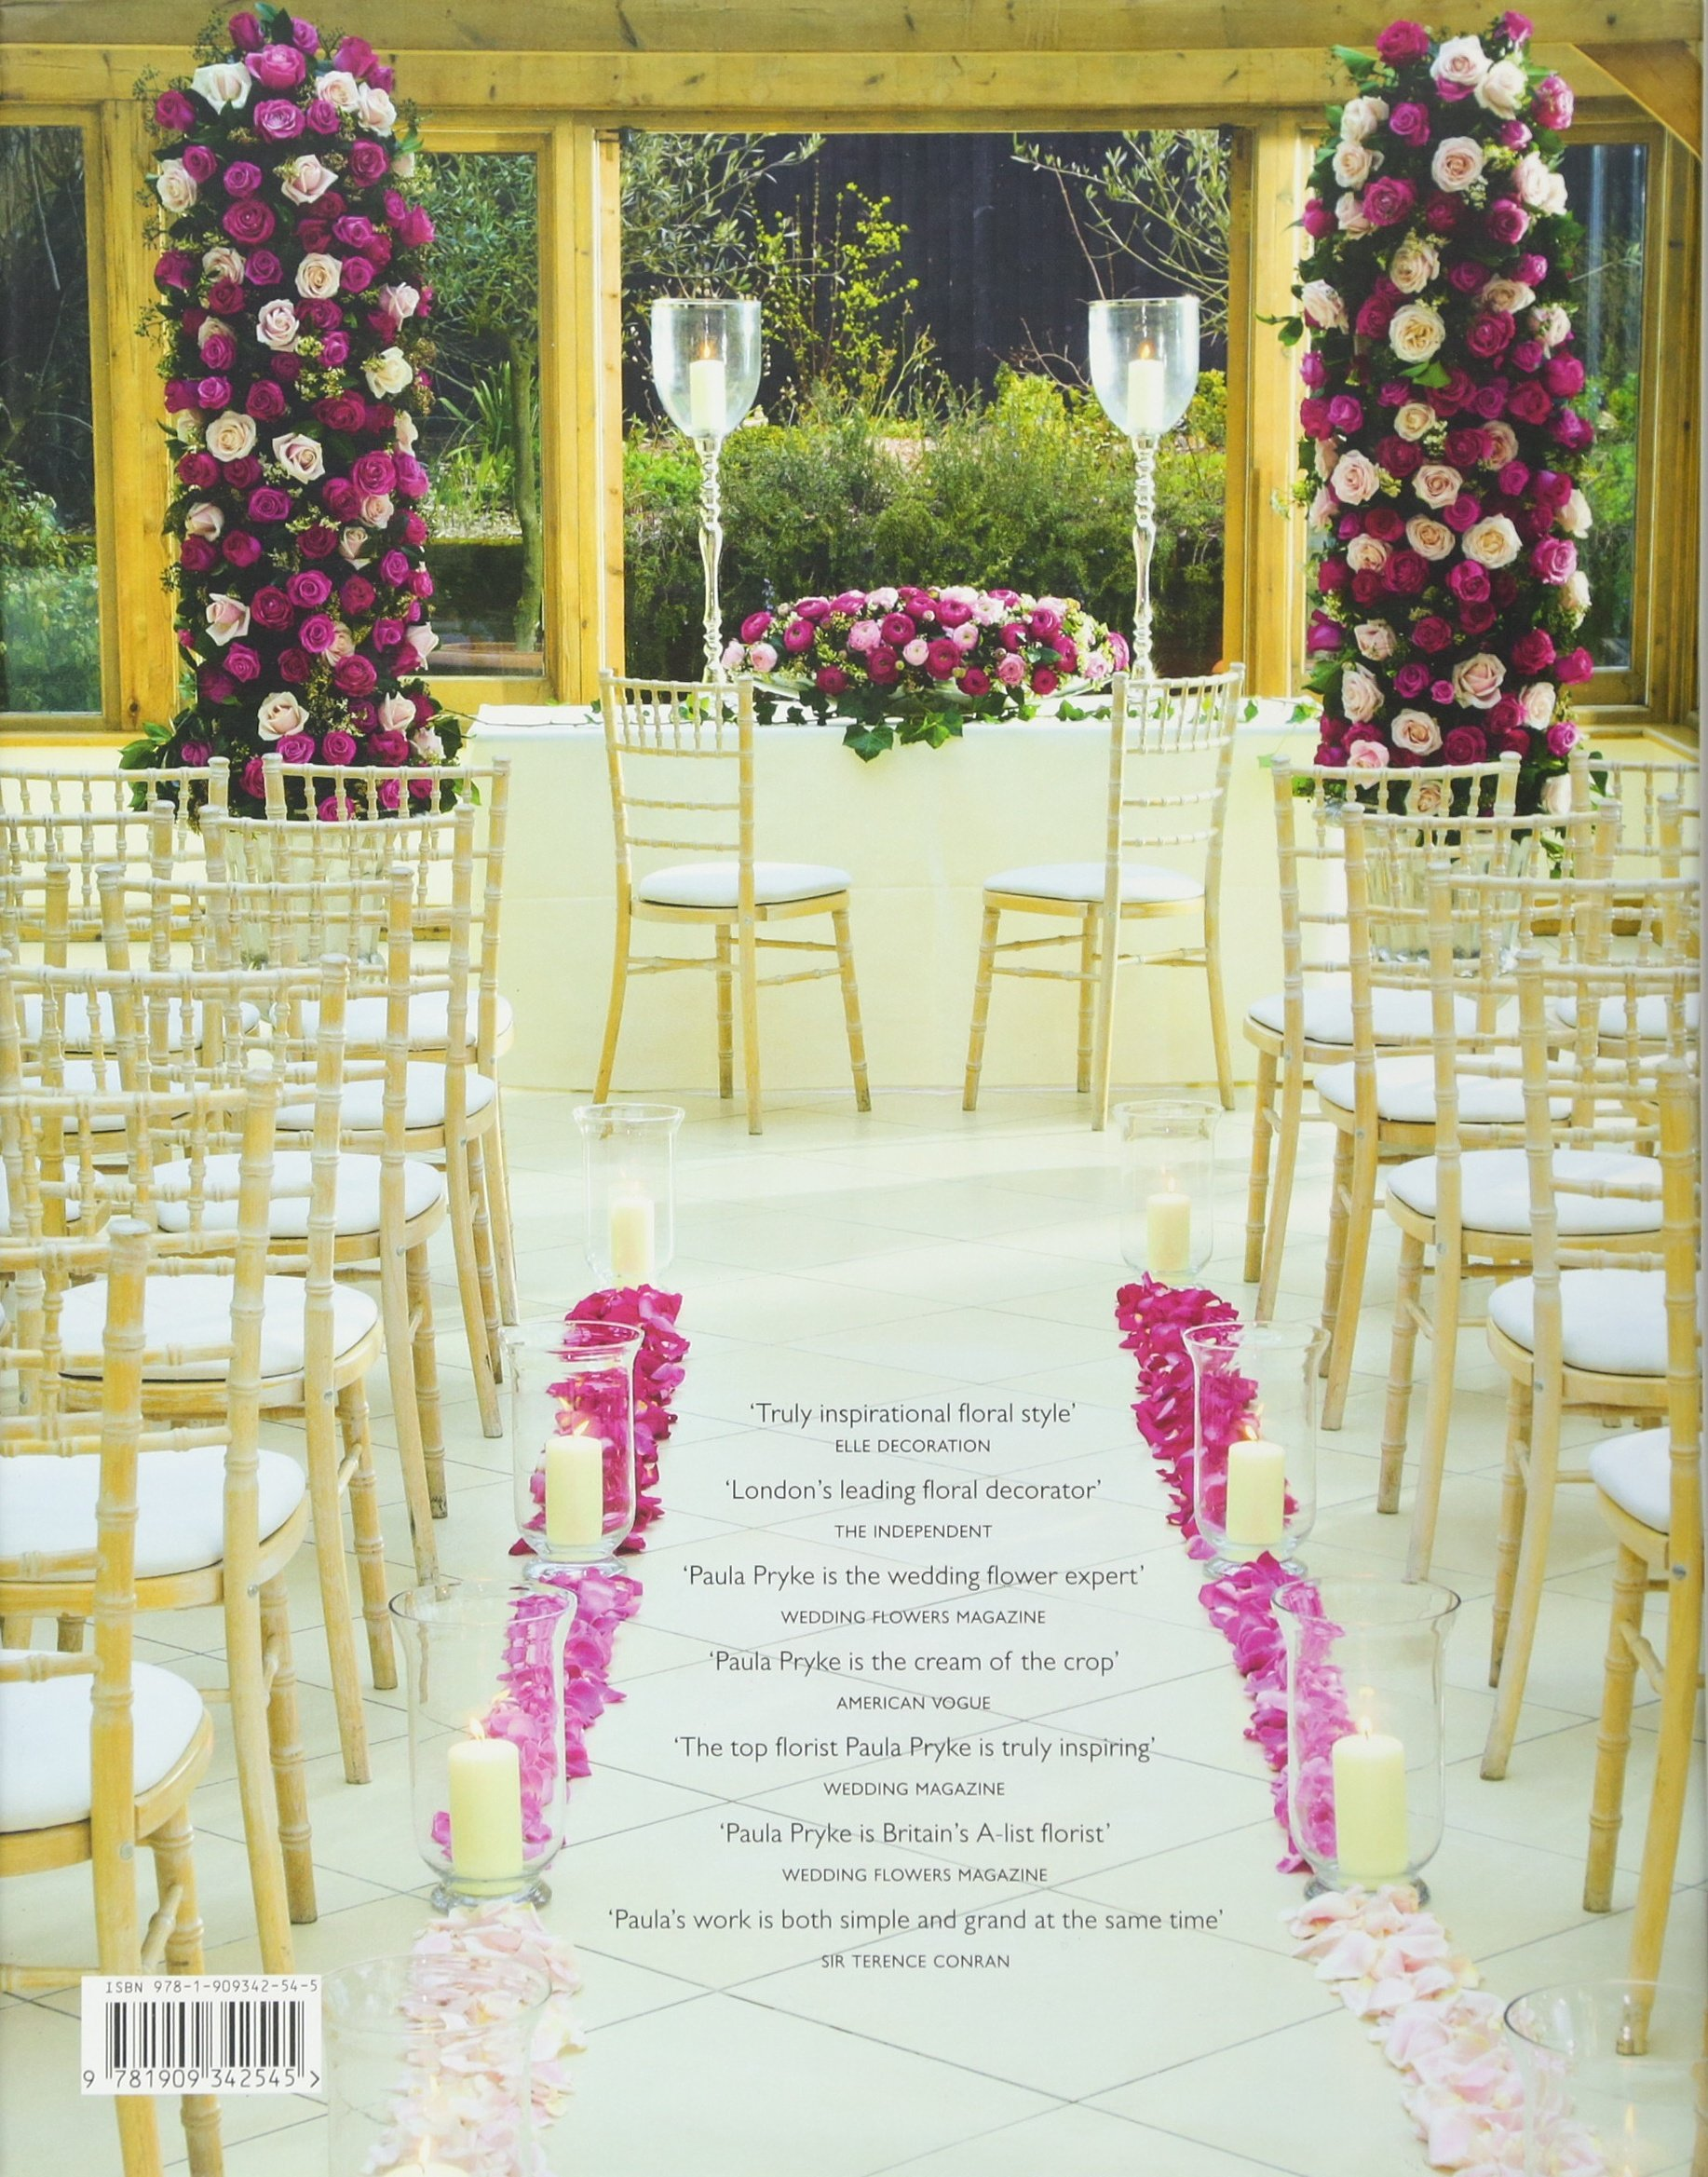 paula pryke wedding flowers exceptional floral design for